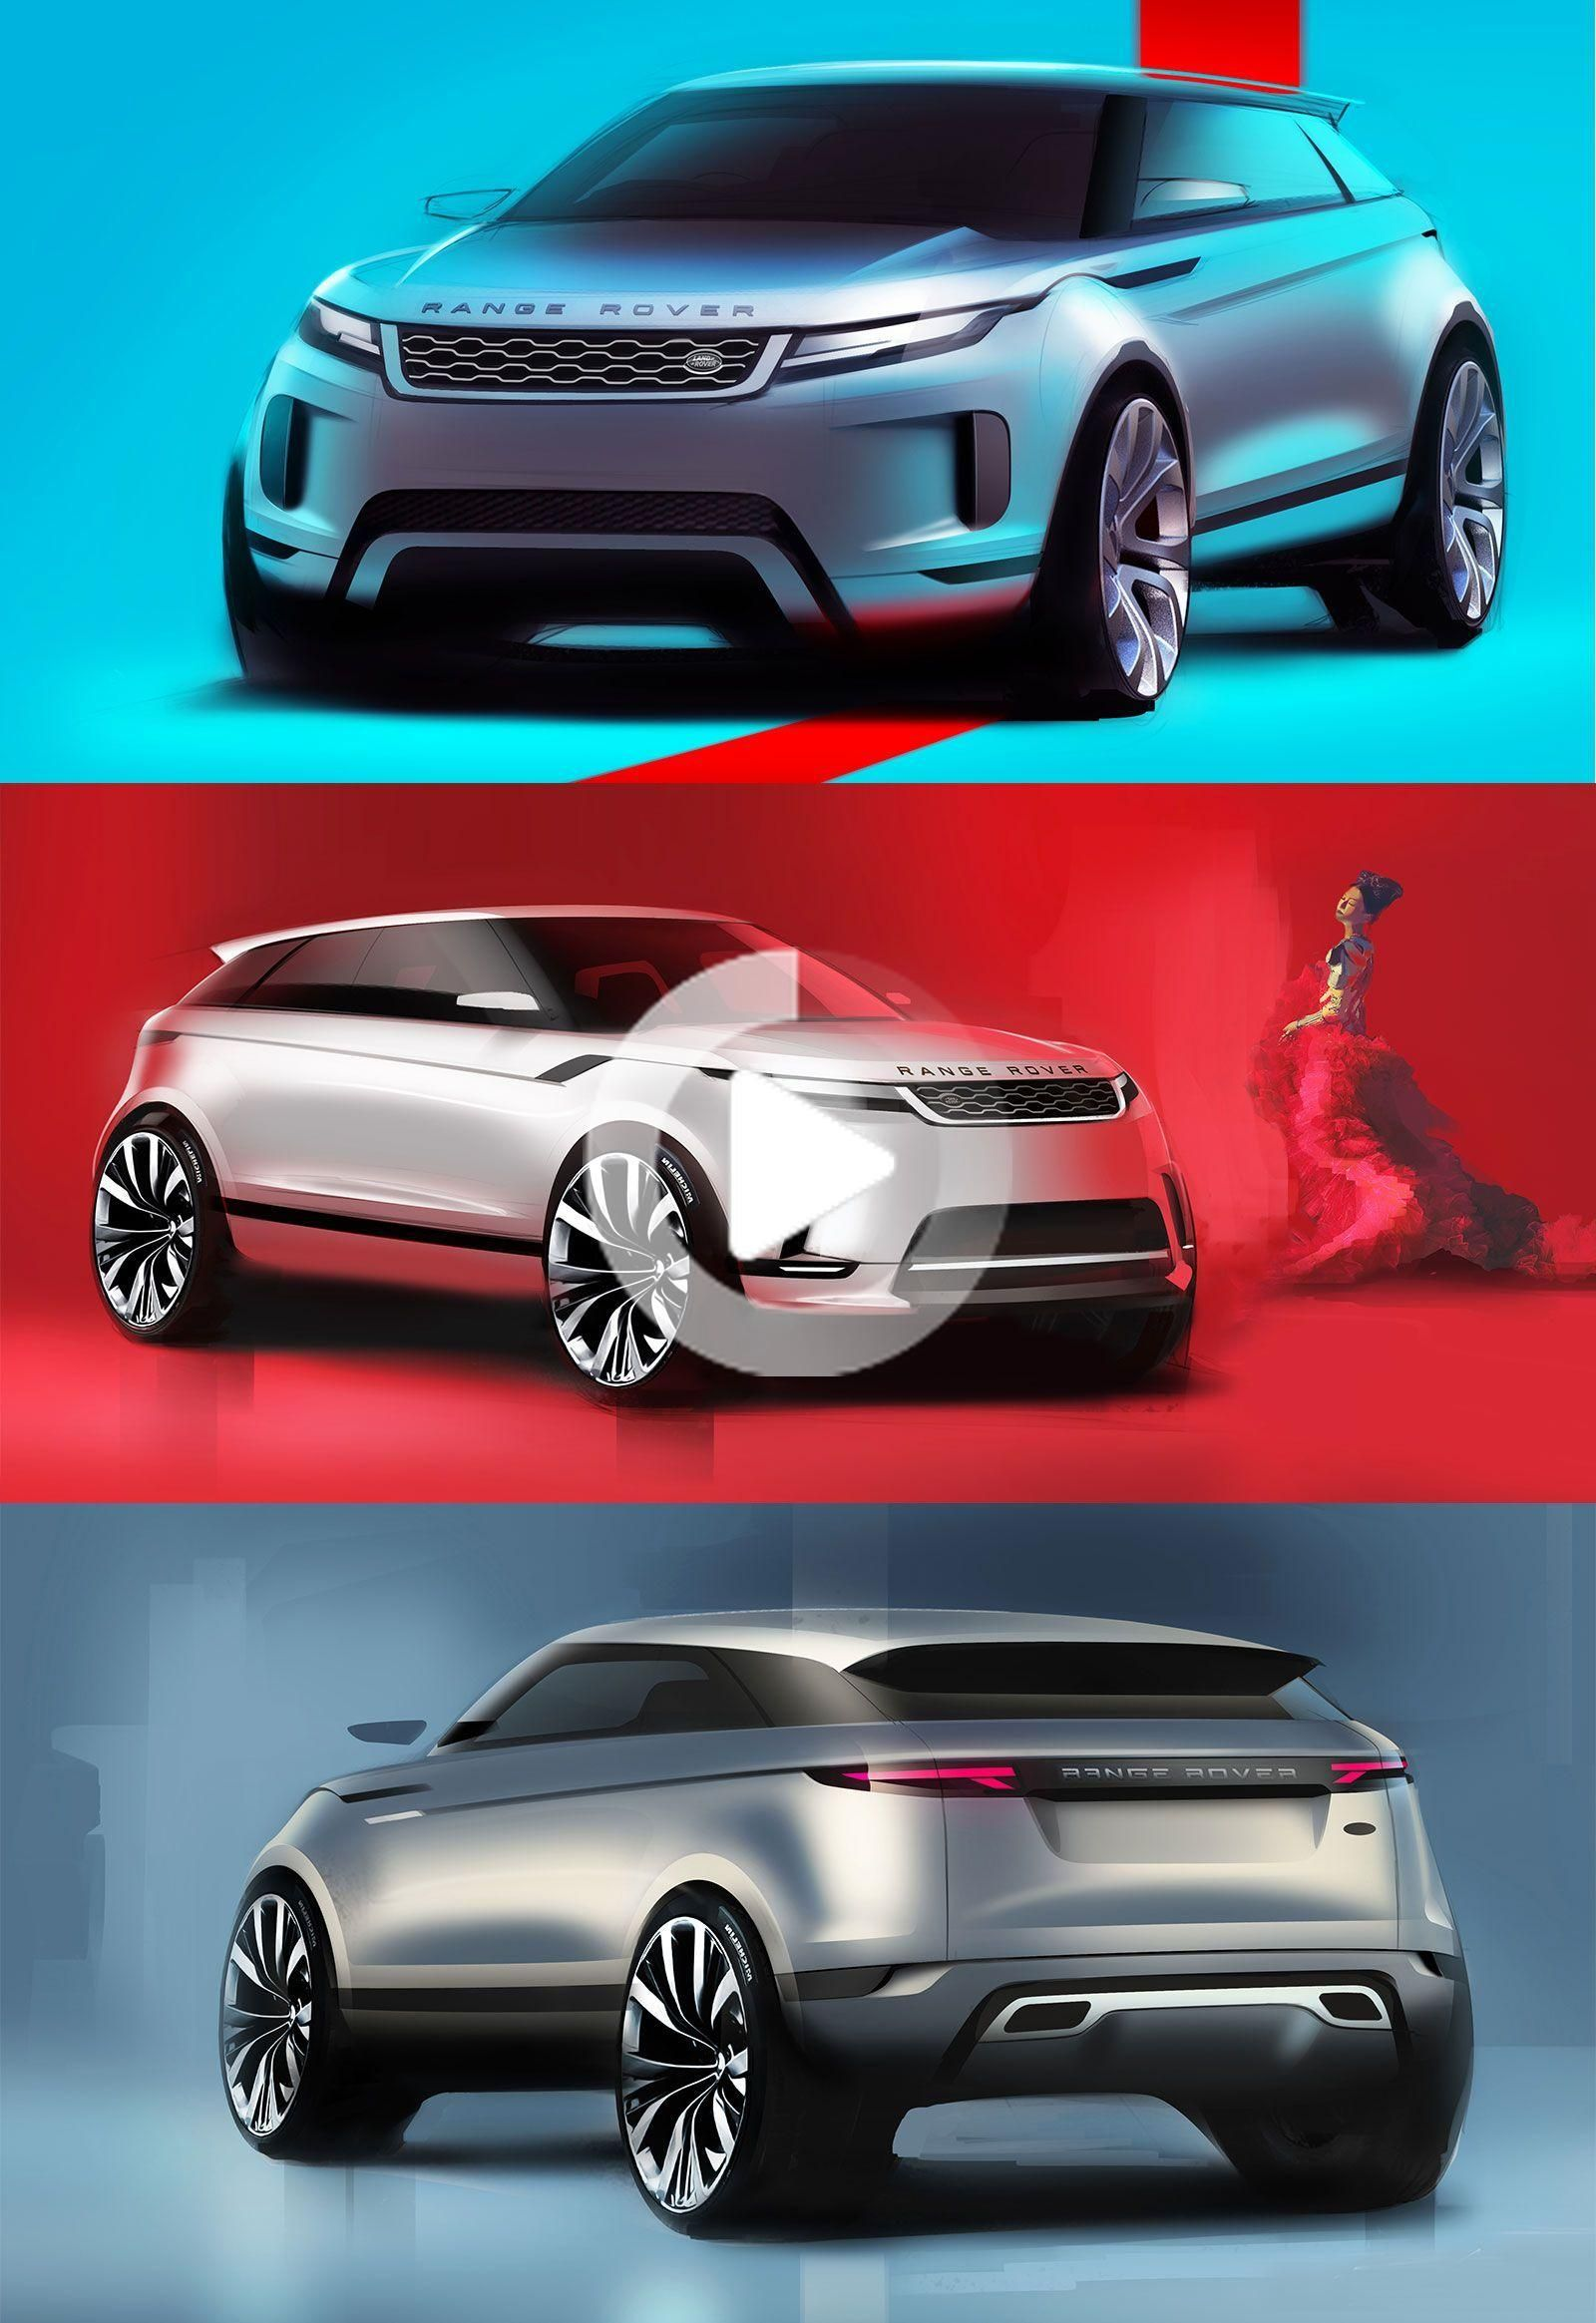 New Range Rover Evoque: Design Sketches  #RangeRoverEvoque #CarDesign #RangeRover #Evoque #CarBodyDesign #Design #DesignSketch #DesignSketches #cars #carideas